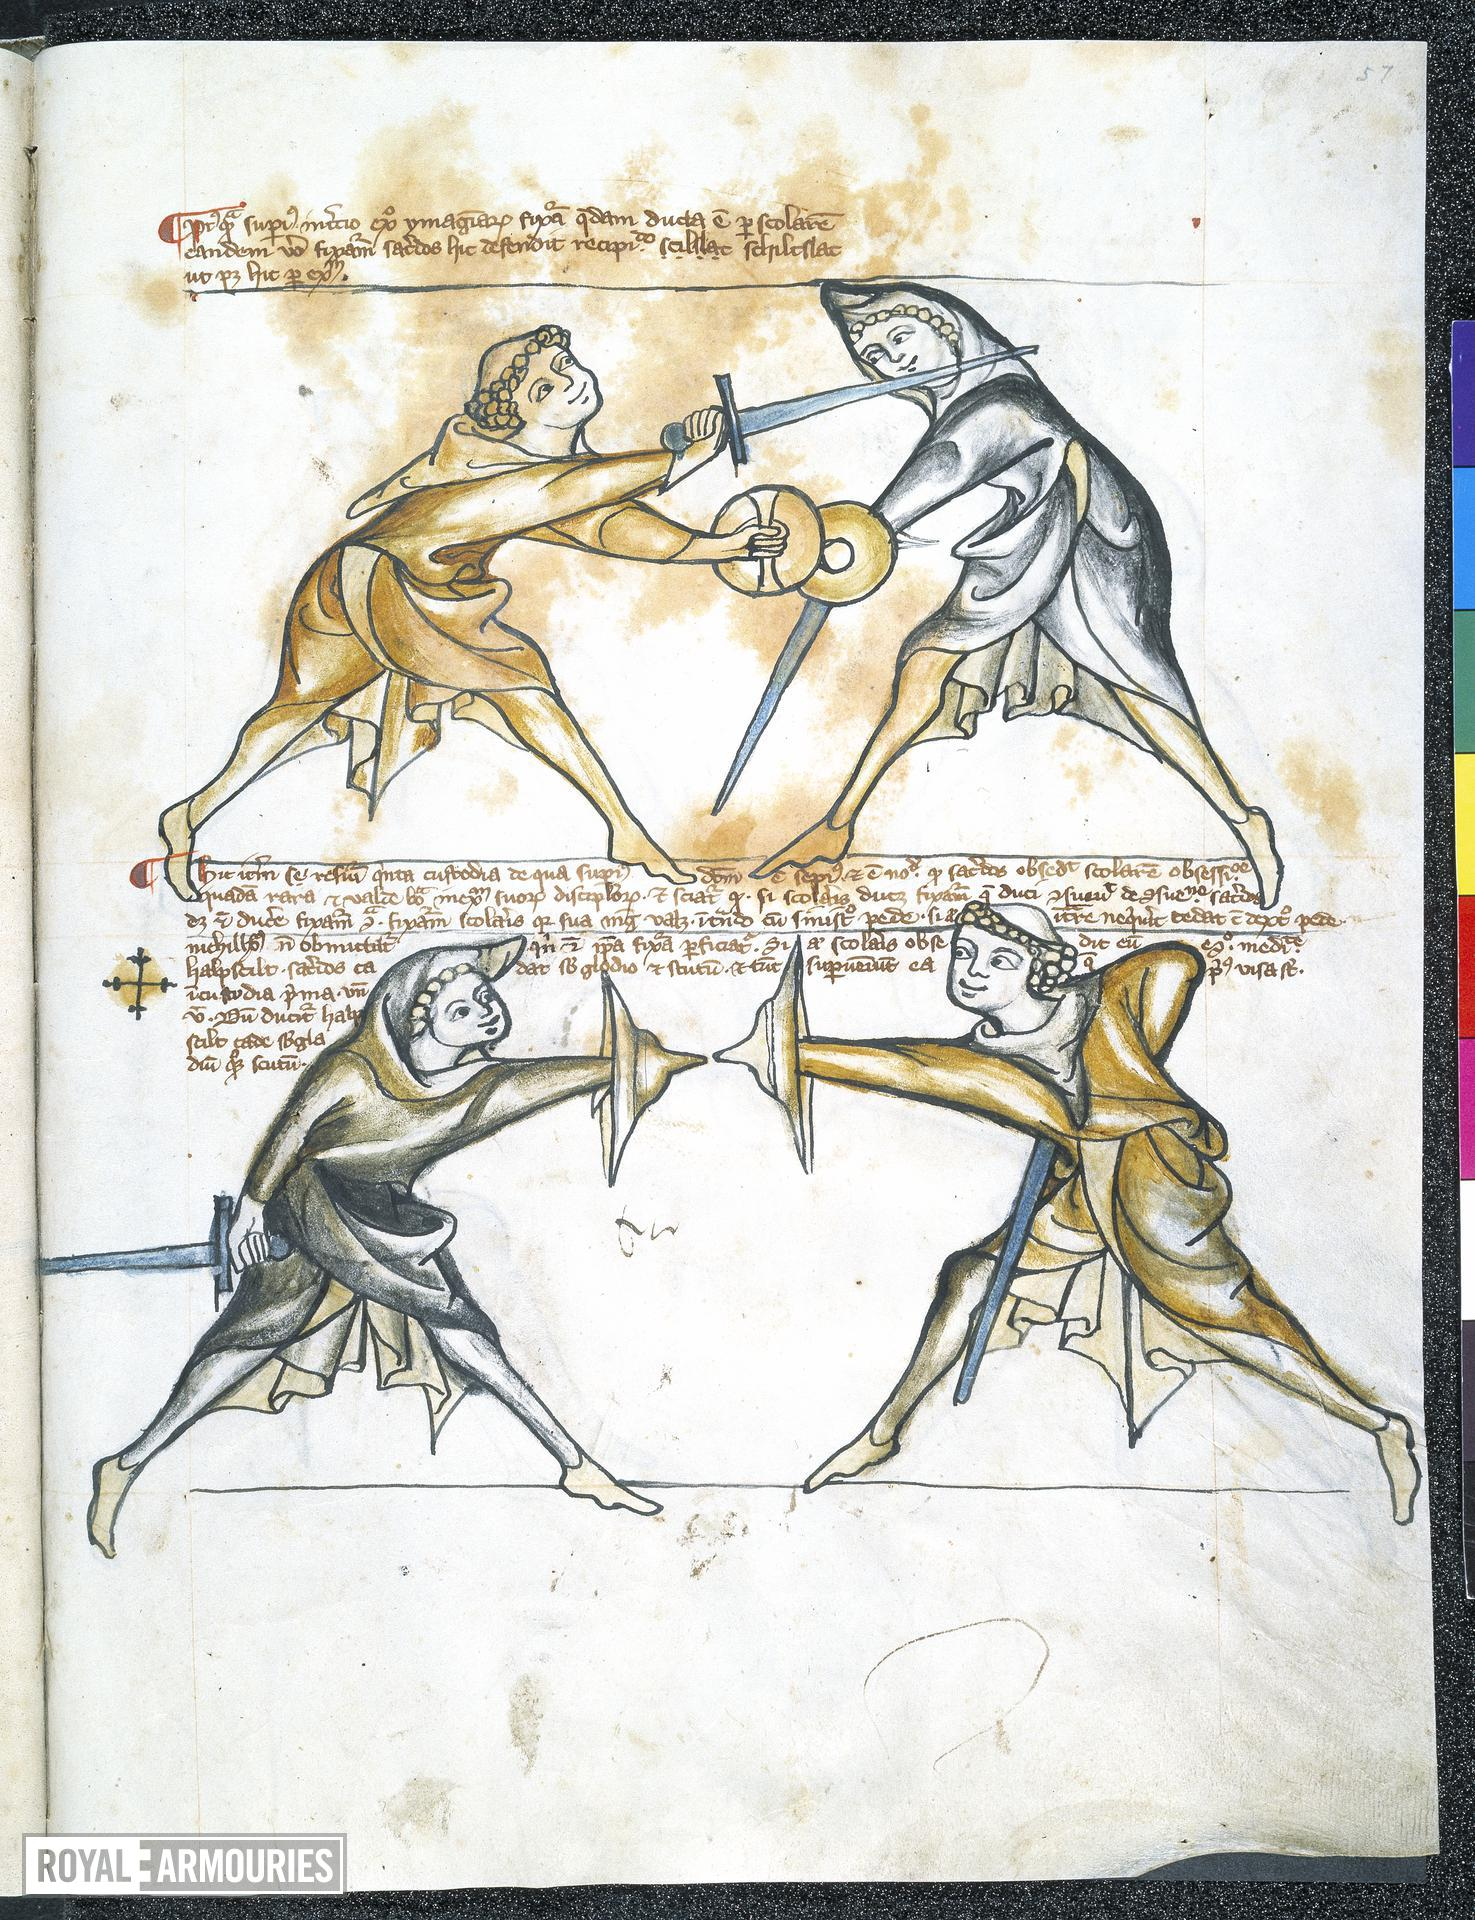 Fencing manual known as the 'Tower Fechtbuch'